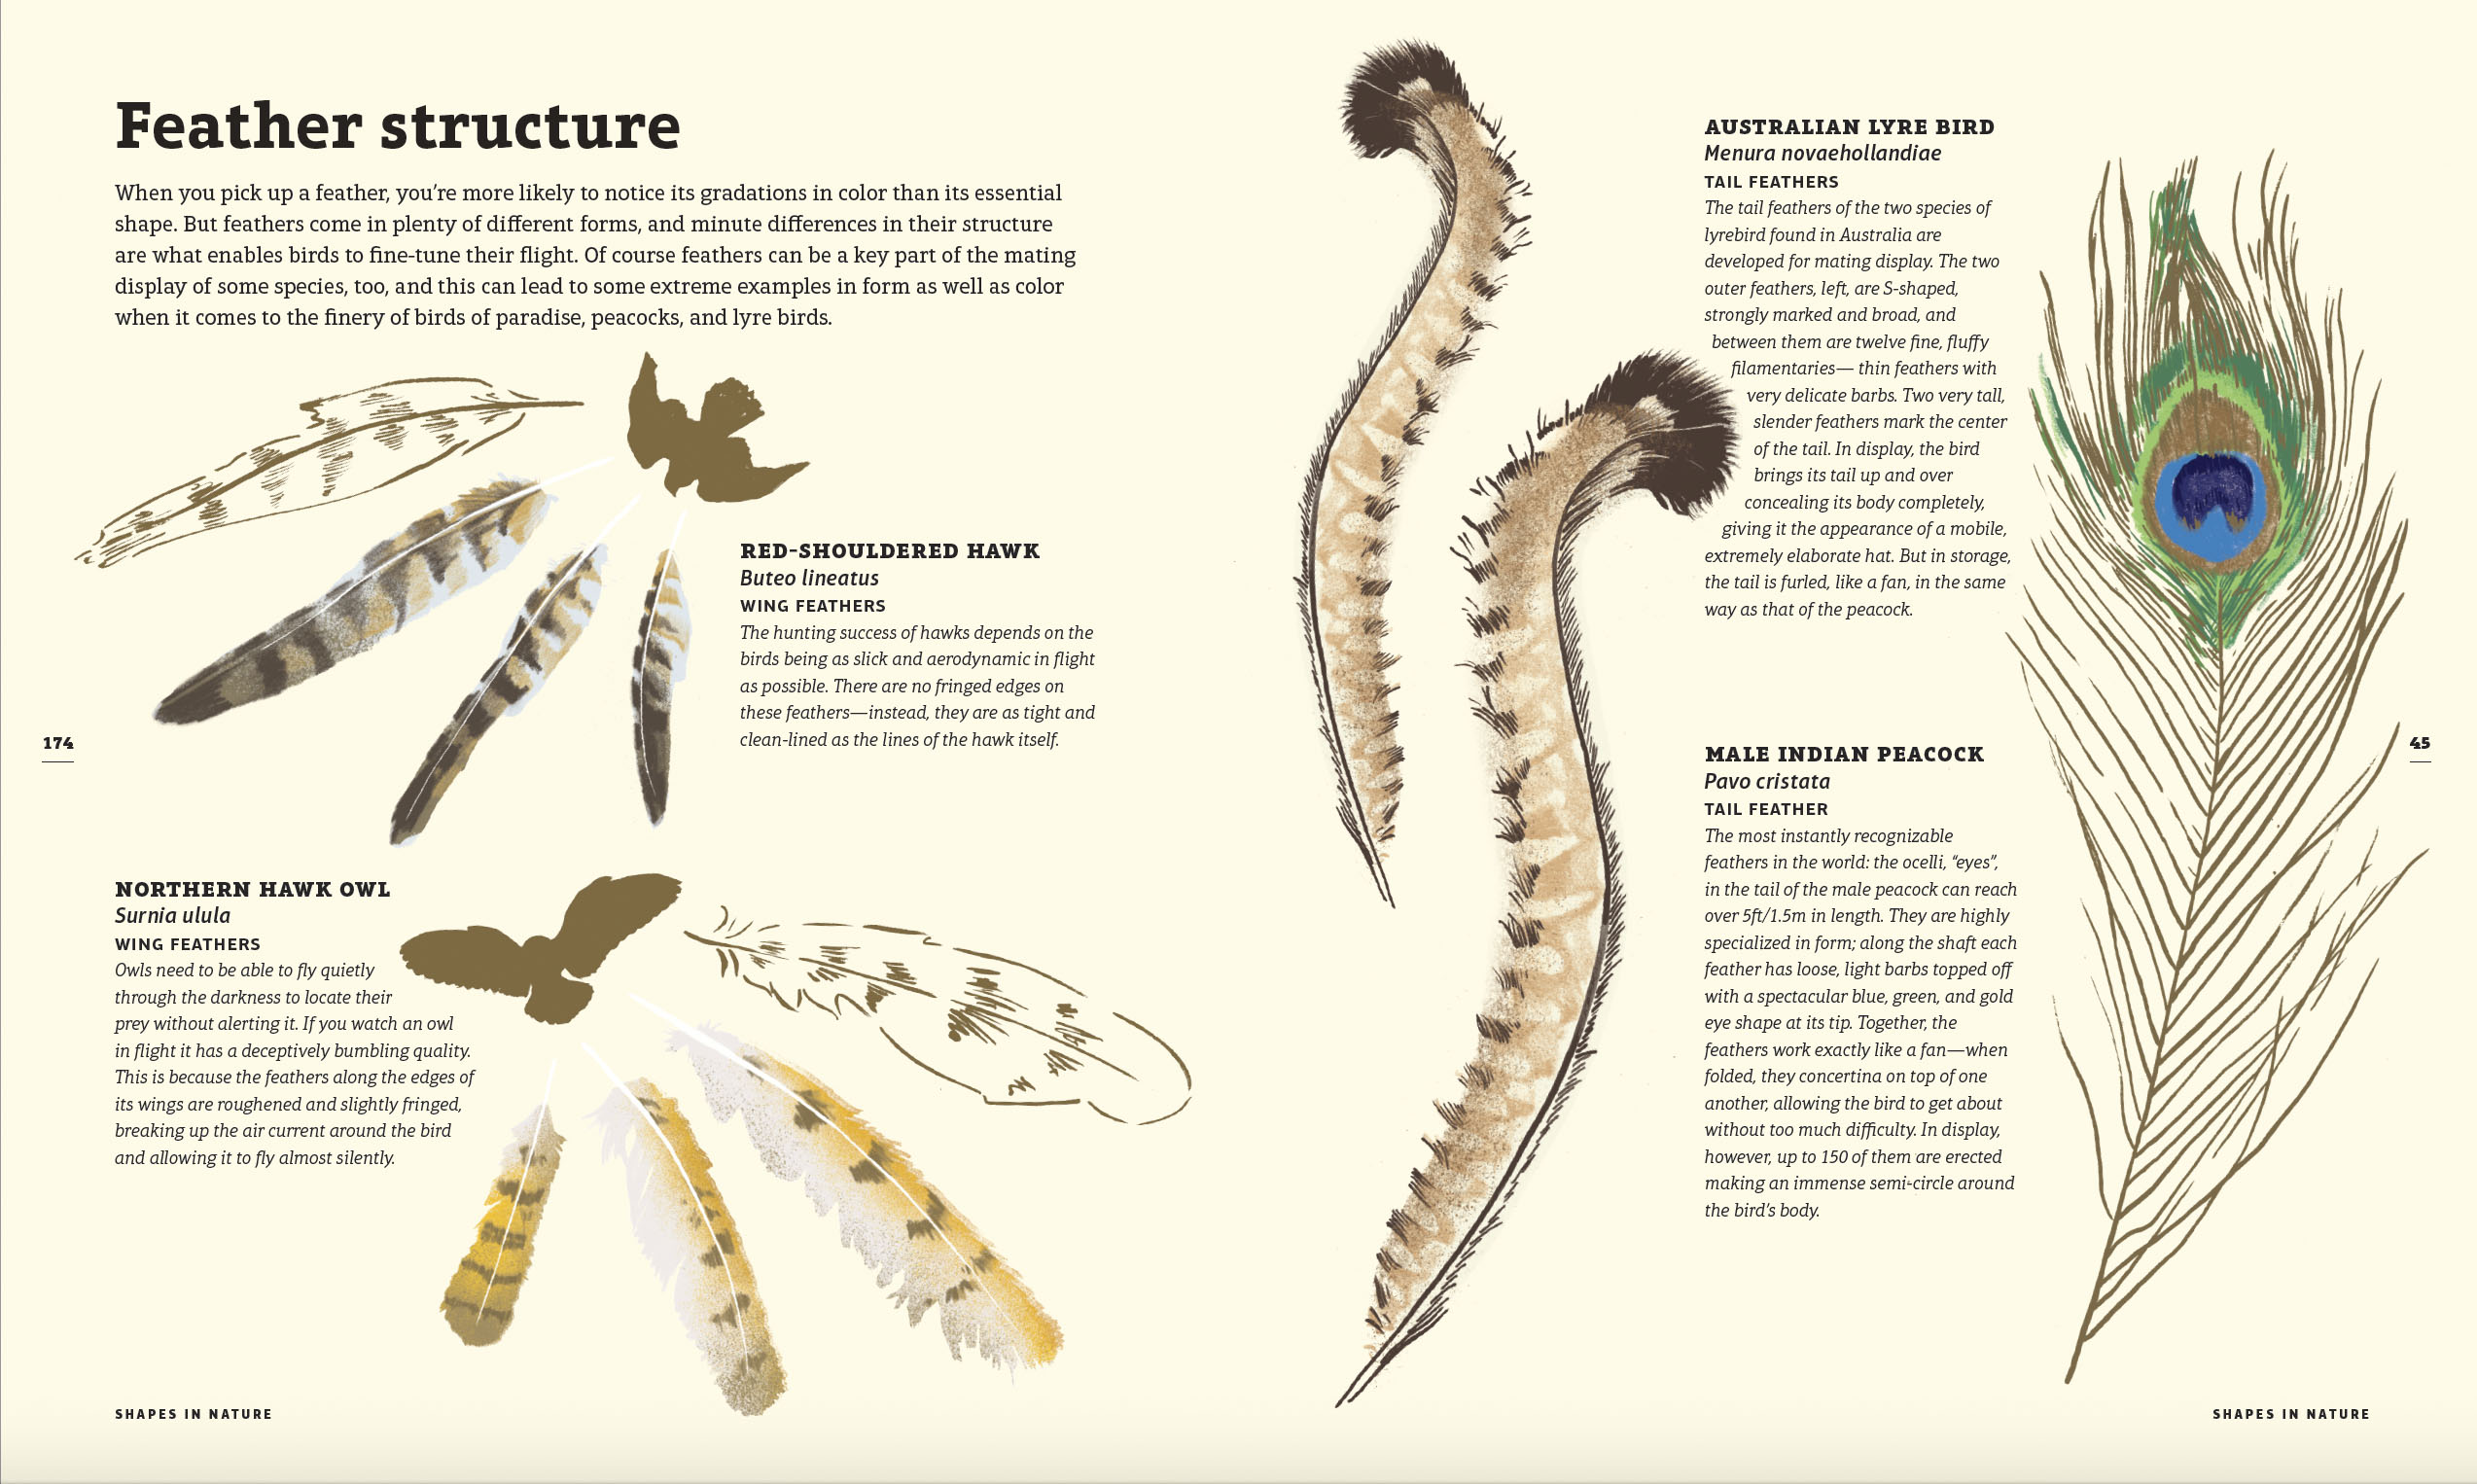 Feather structure illustration